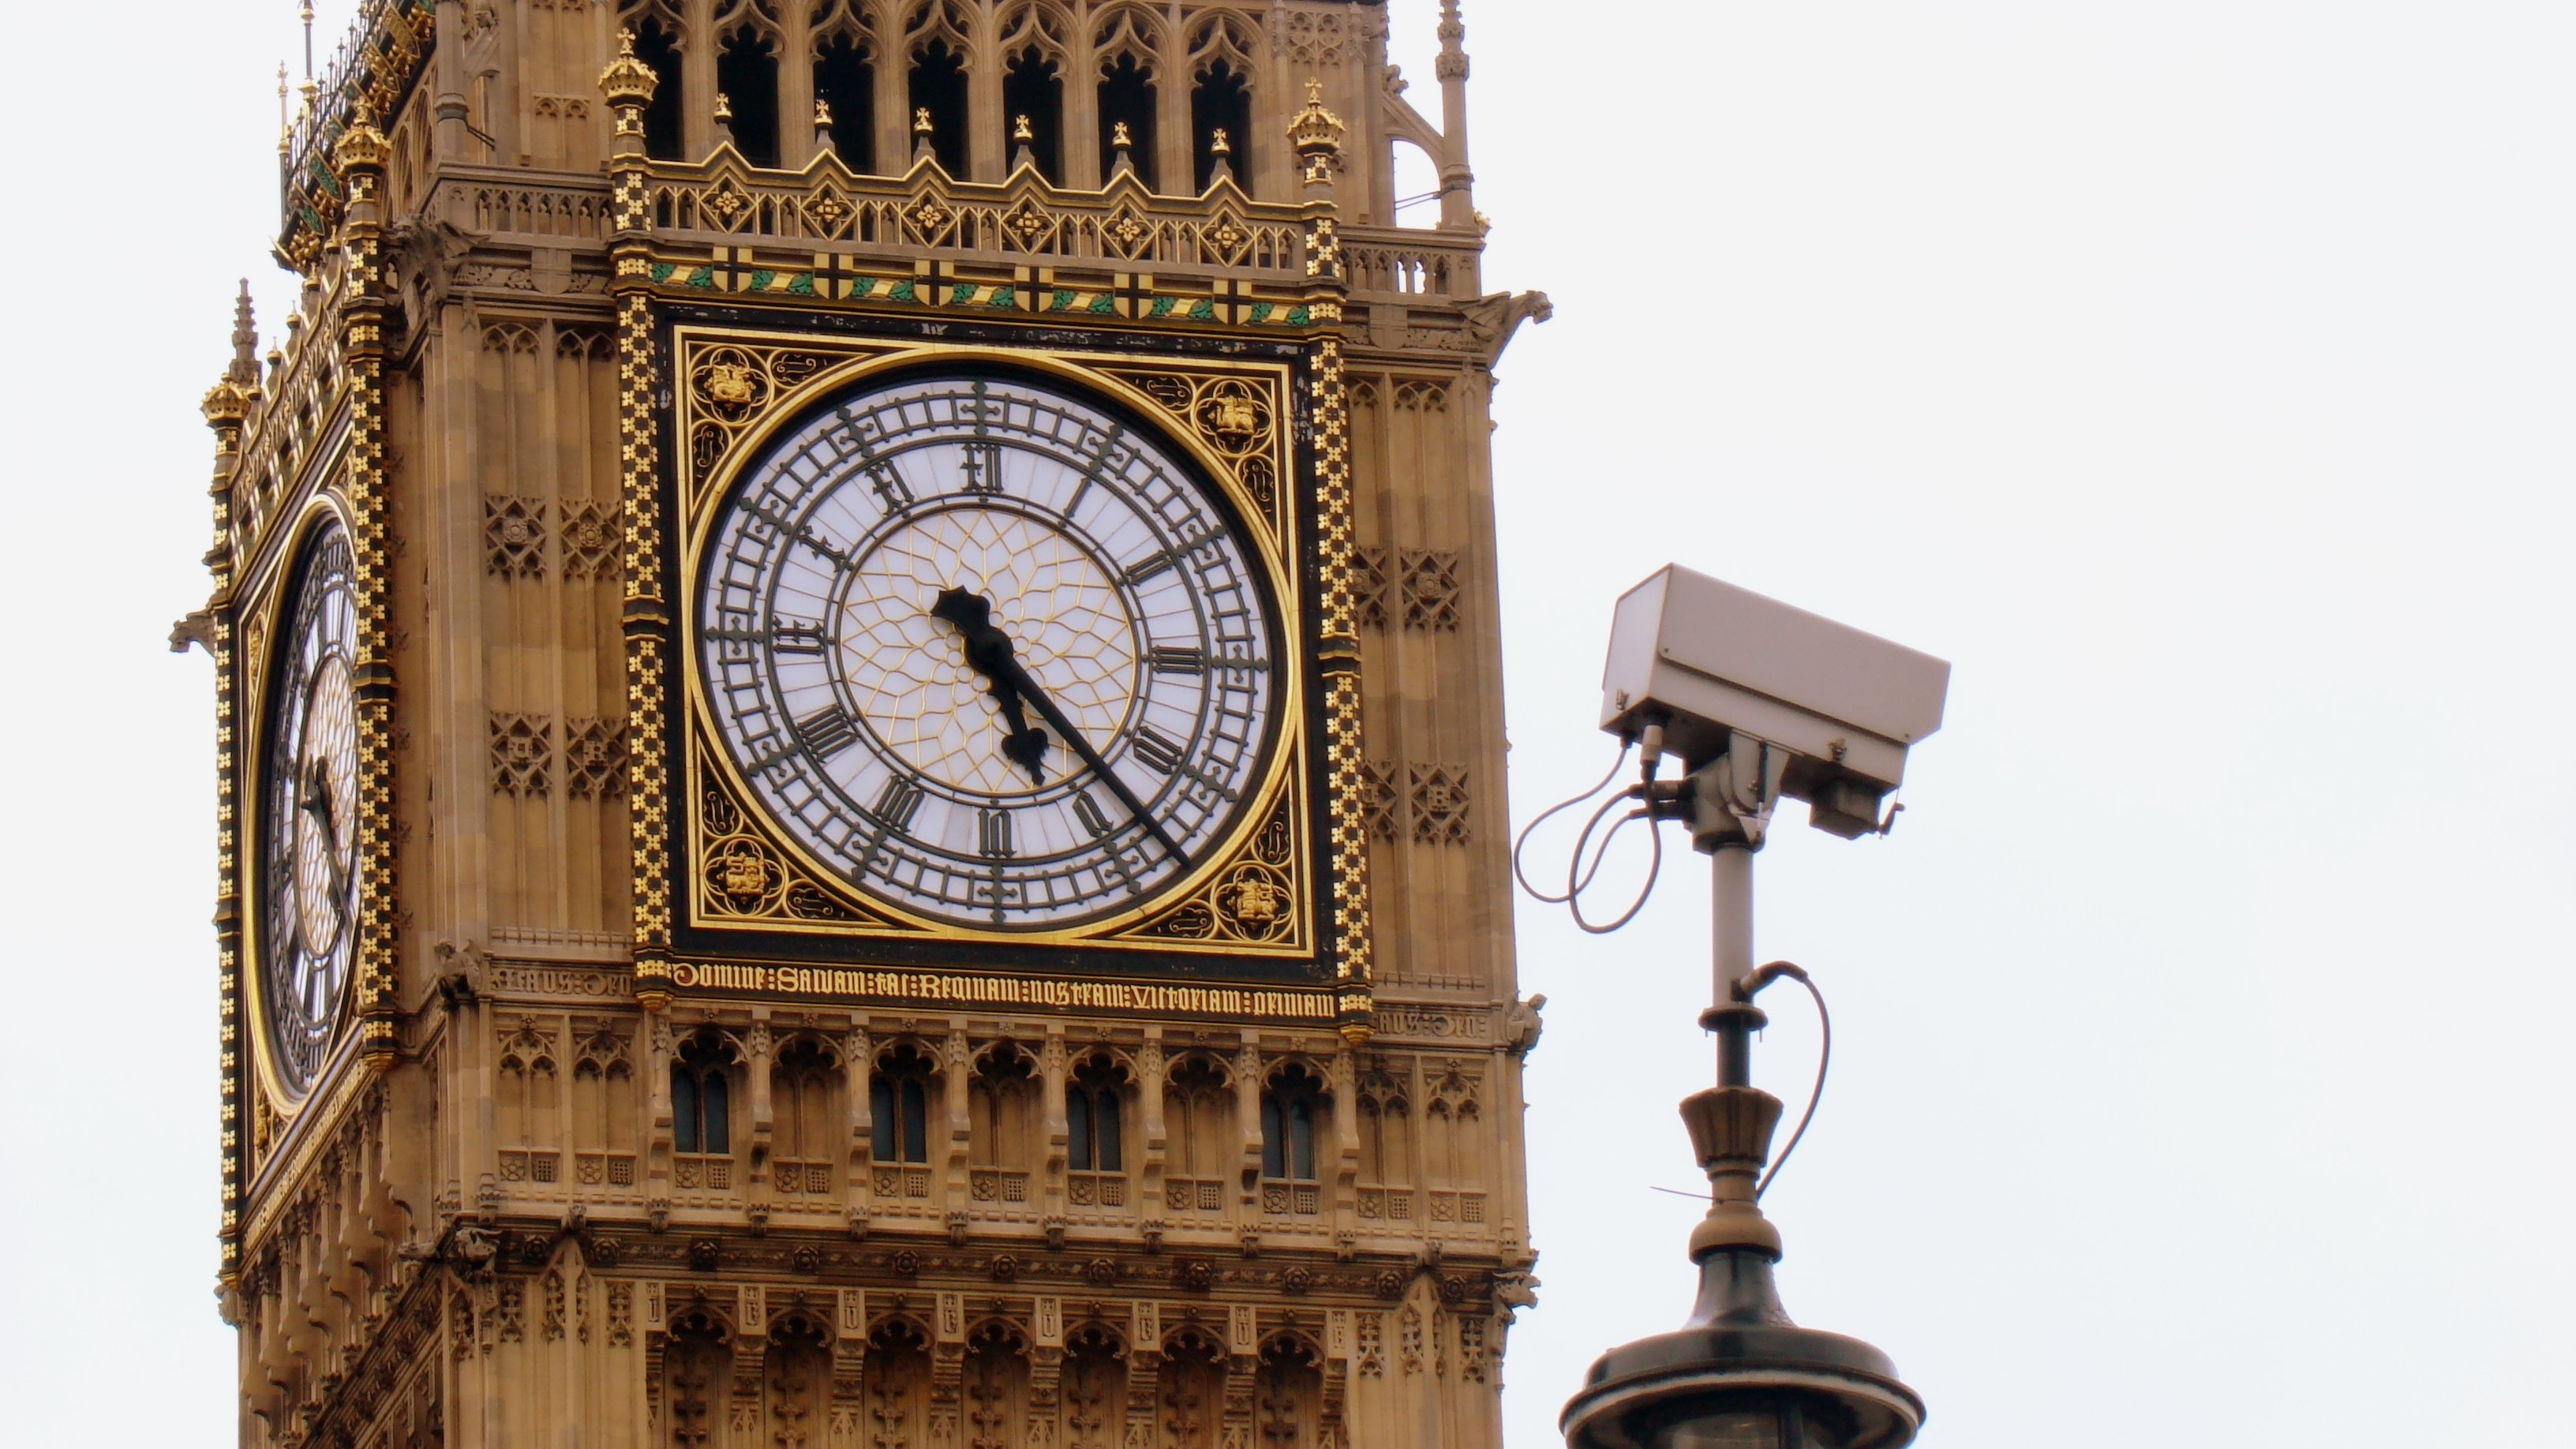 Court May Reveal Details about UK Spying on Attorney-Client Communications